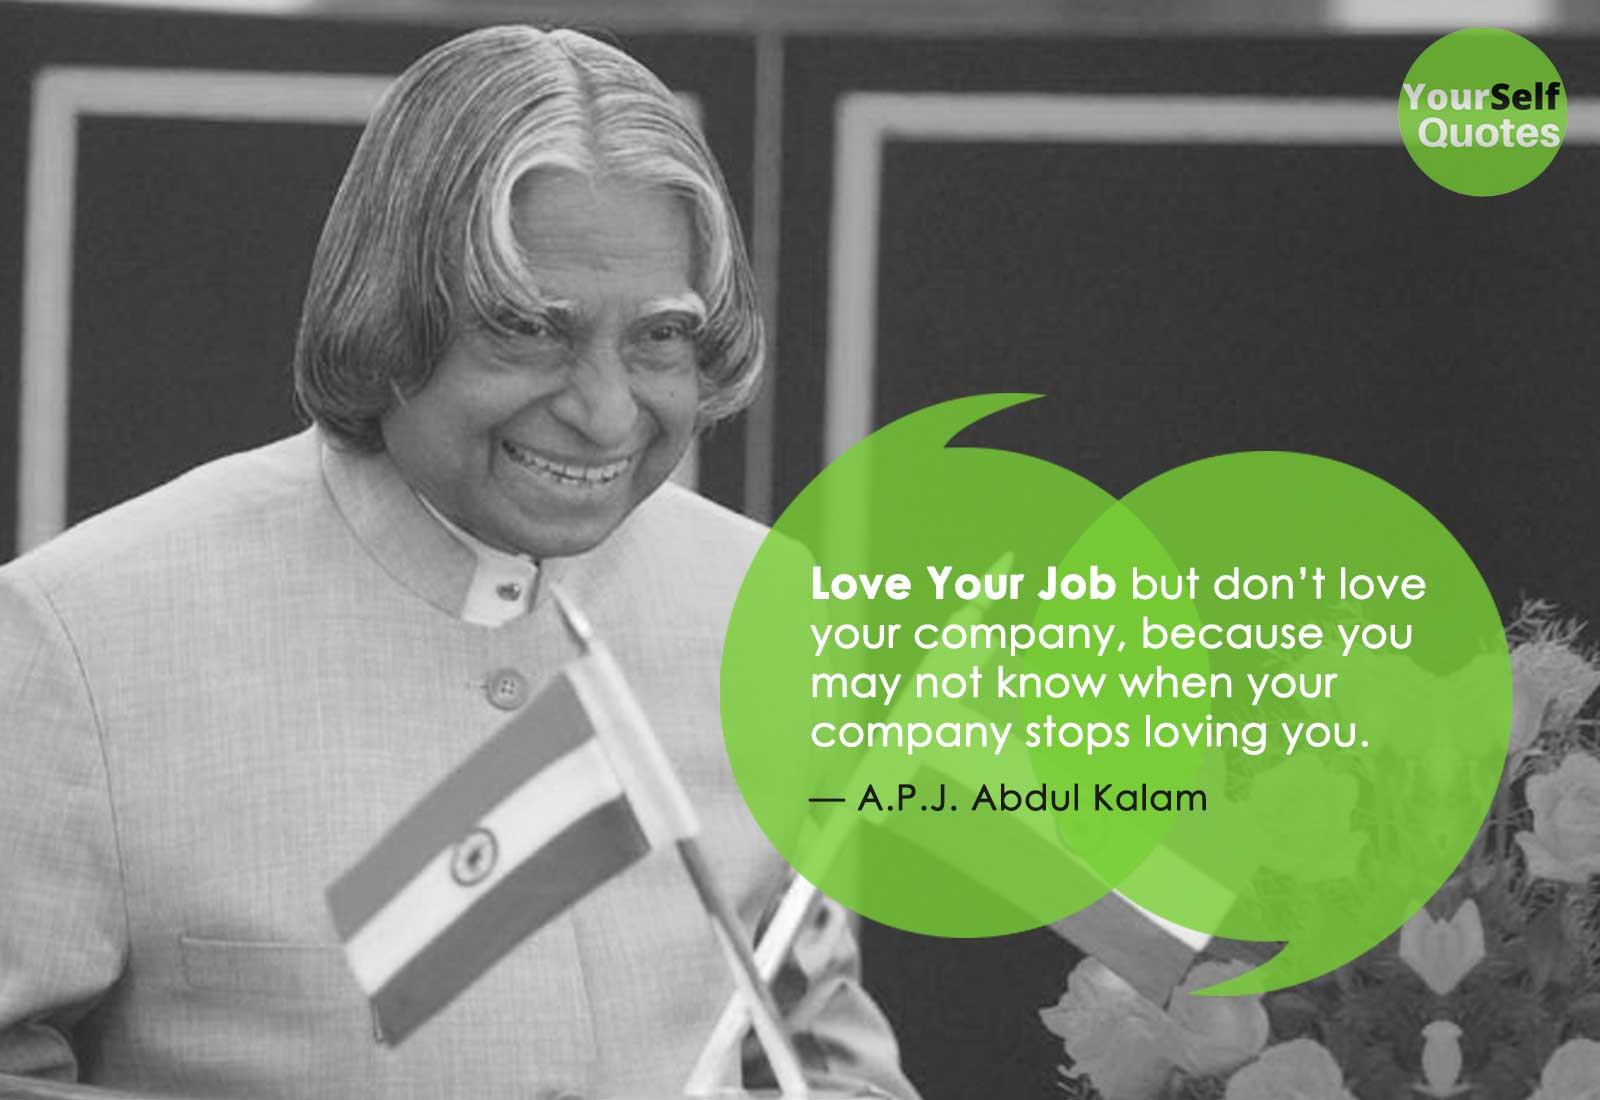 PJ Abdul Kalam Quote on Love